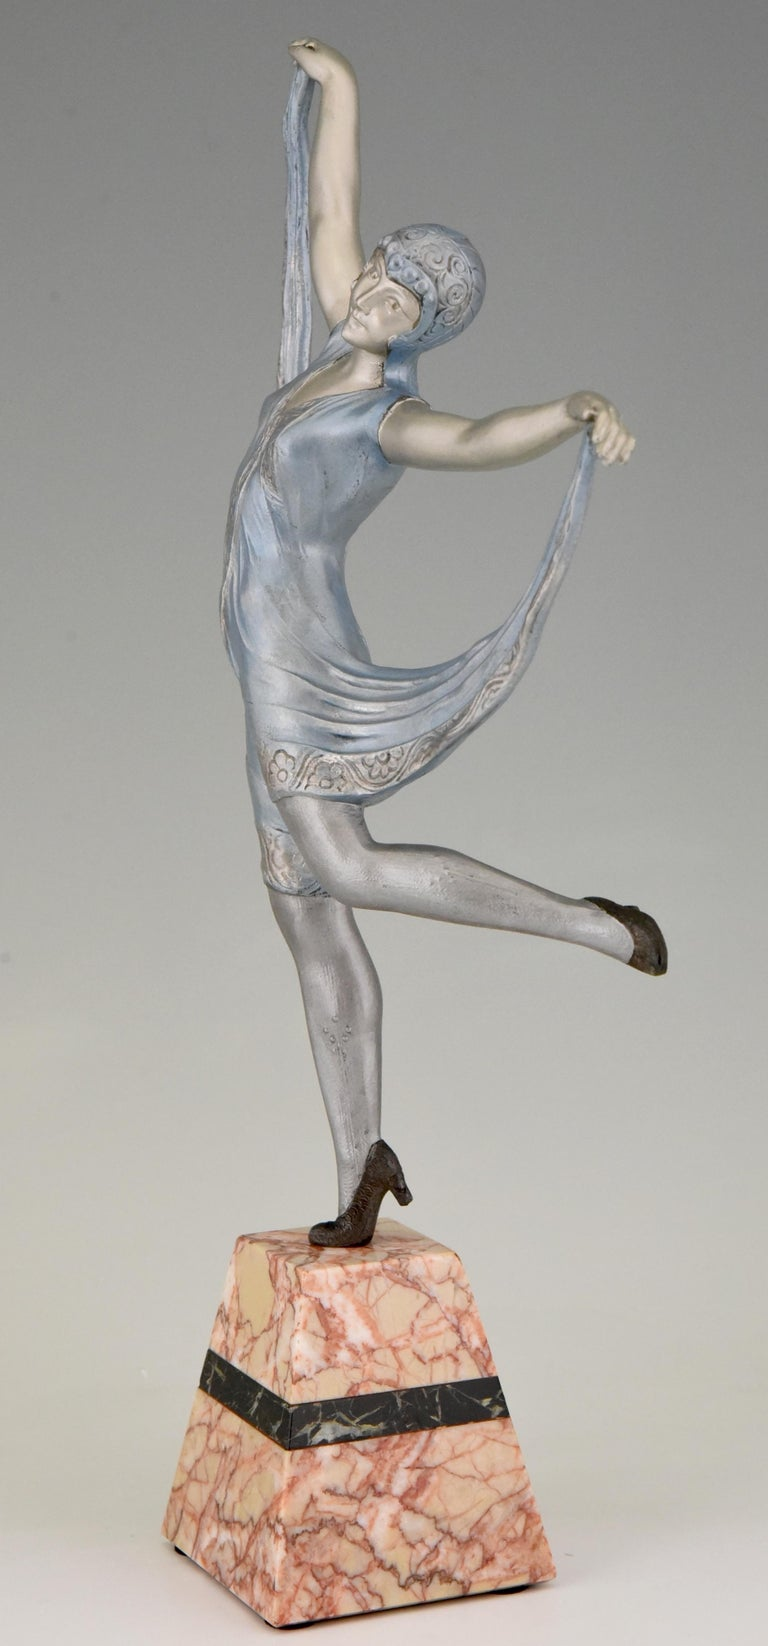 French Art Deco Sculpture of a Dancer Limousin, France, 1930 For Sale